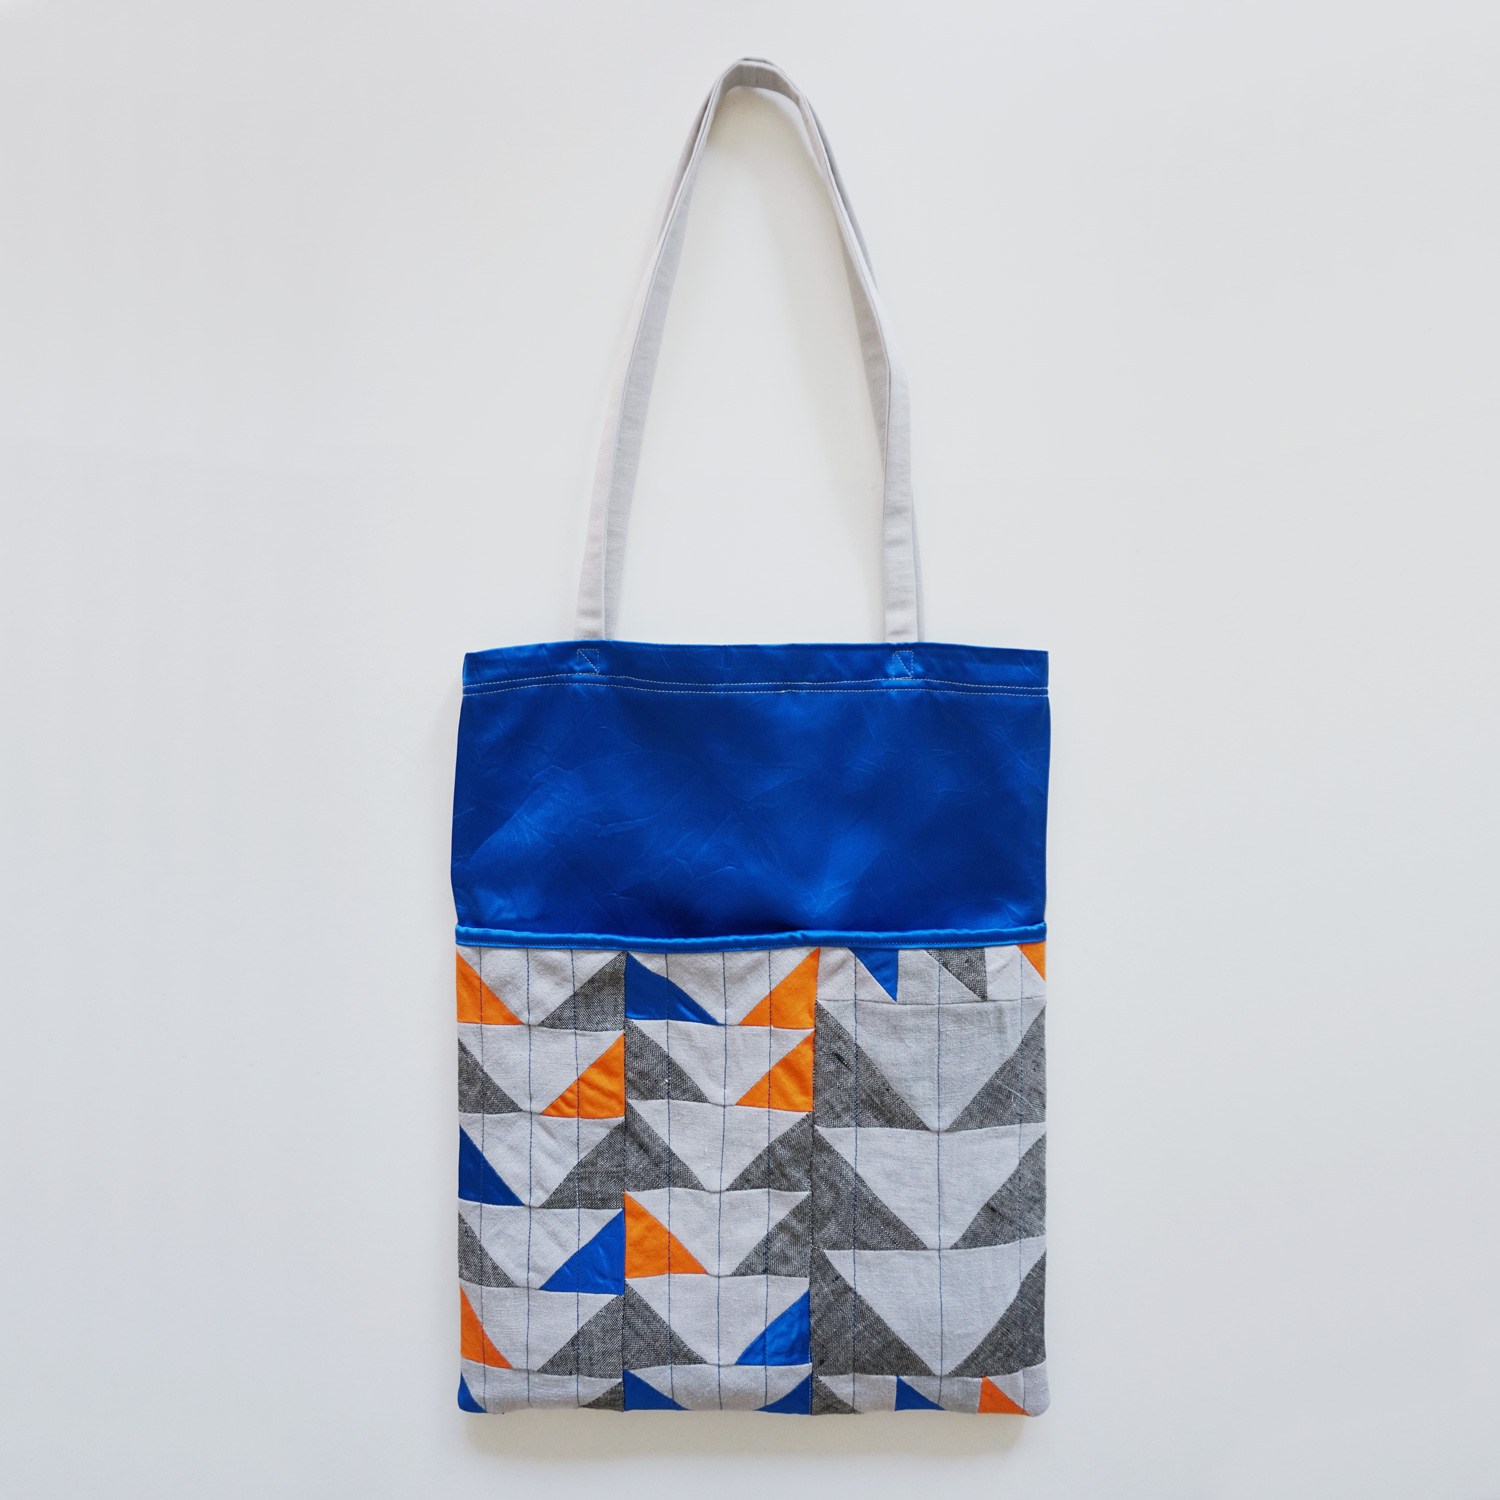 A luxurious (reversible) tote bag with a large quilted pocket, a shiny blue exterior and a silky black lining.